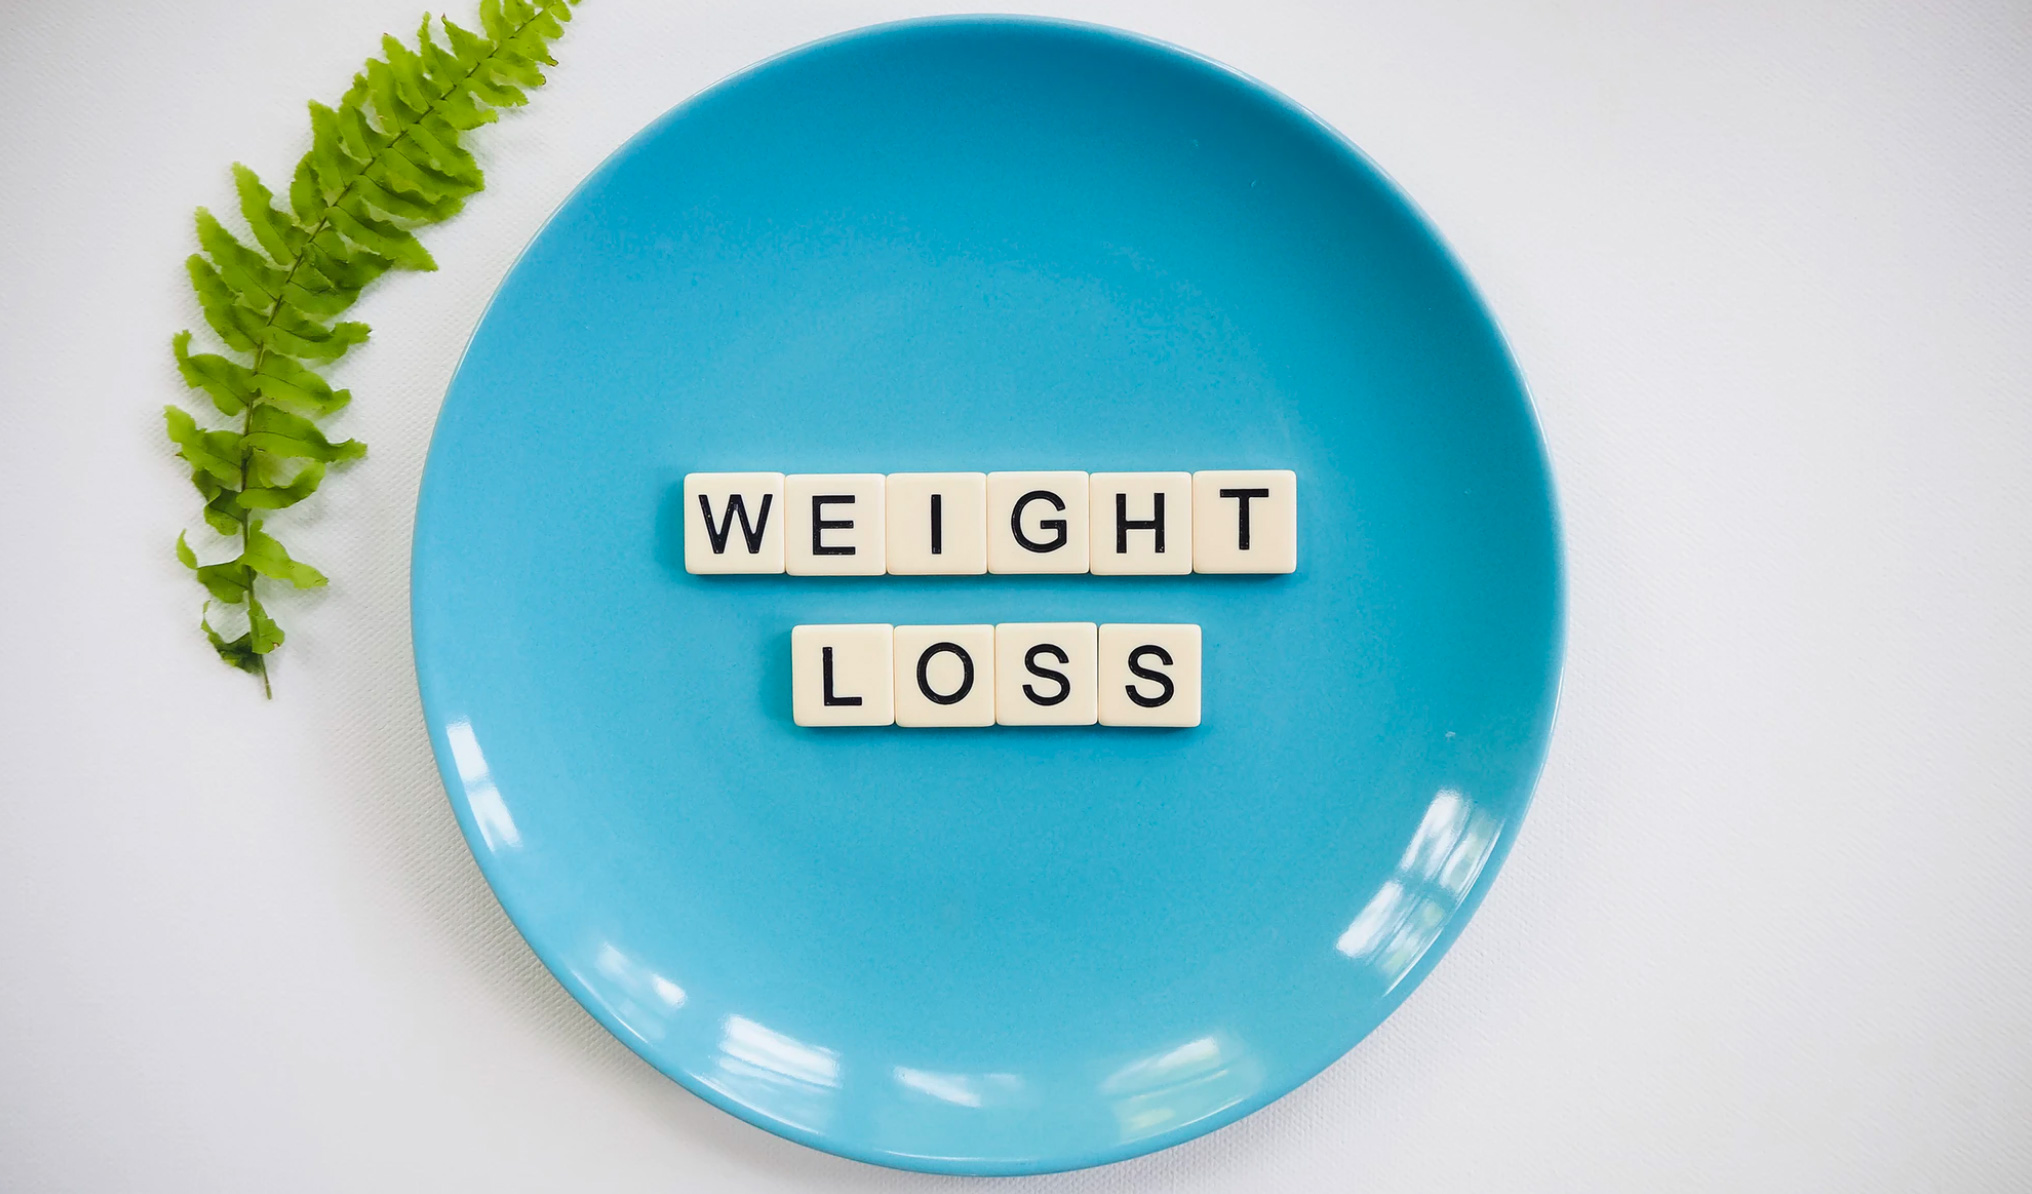 A blue plate that has weight loss written on it.